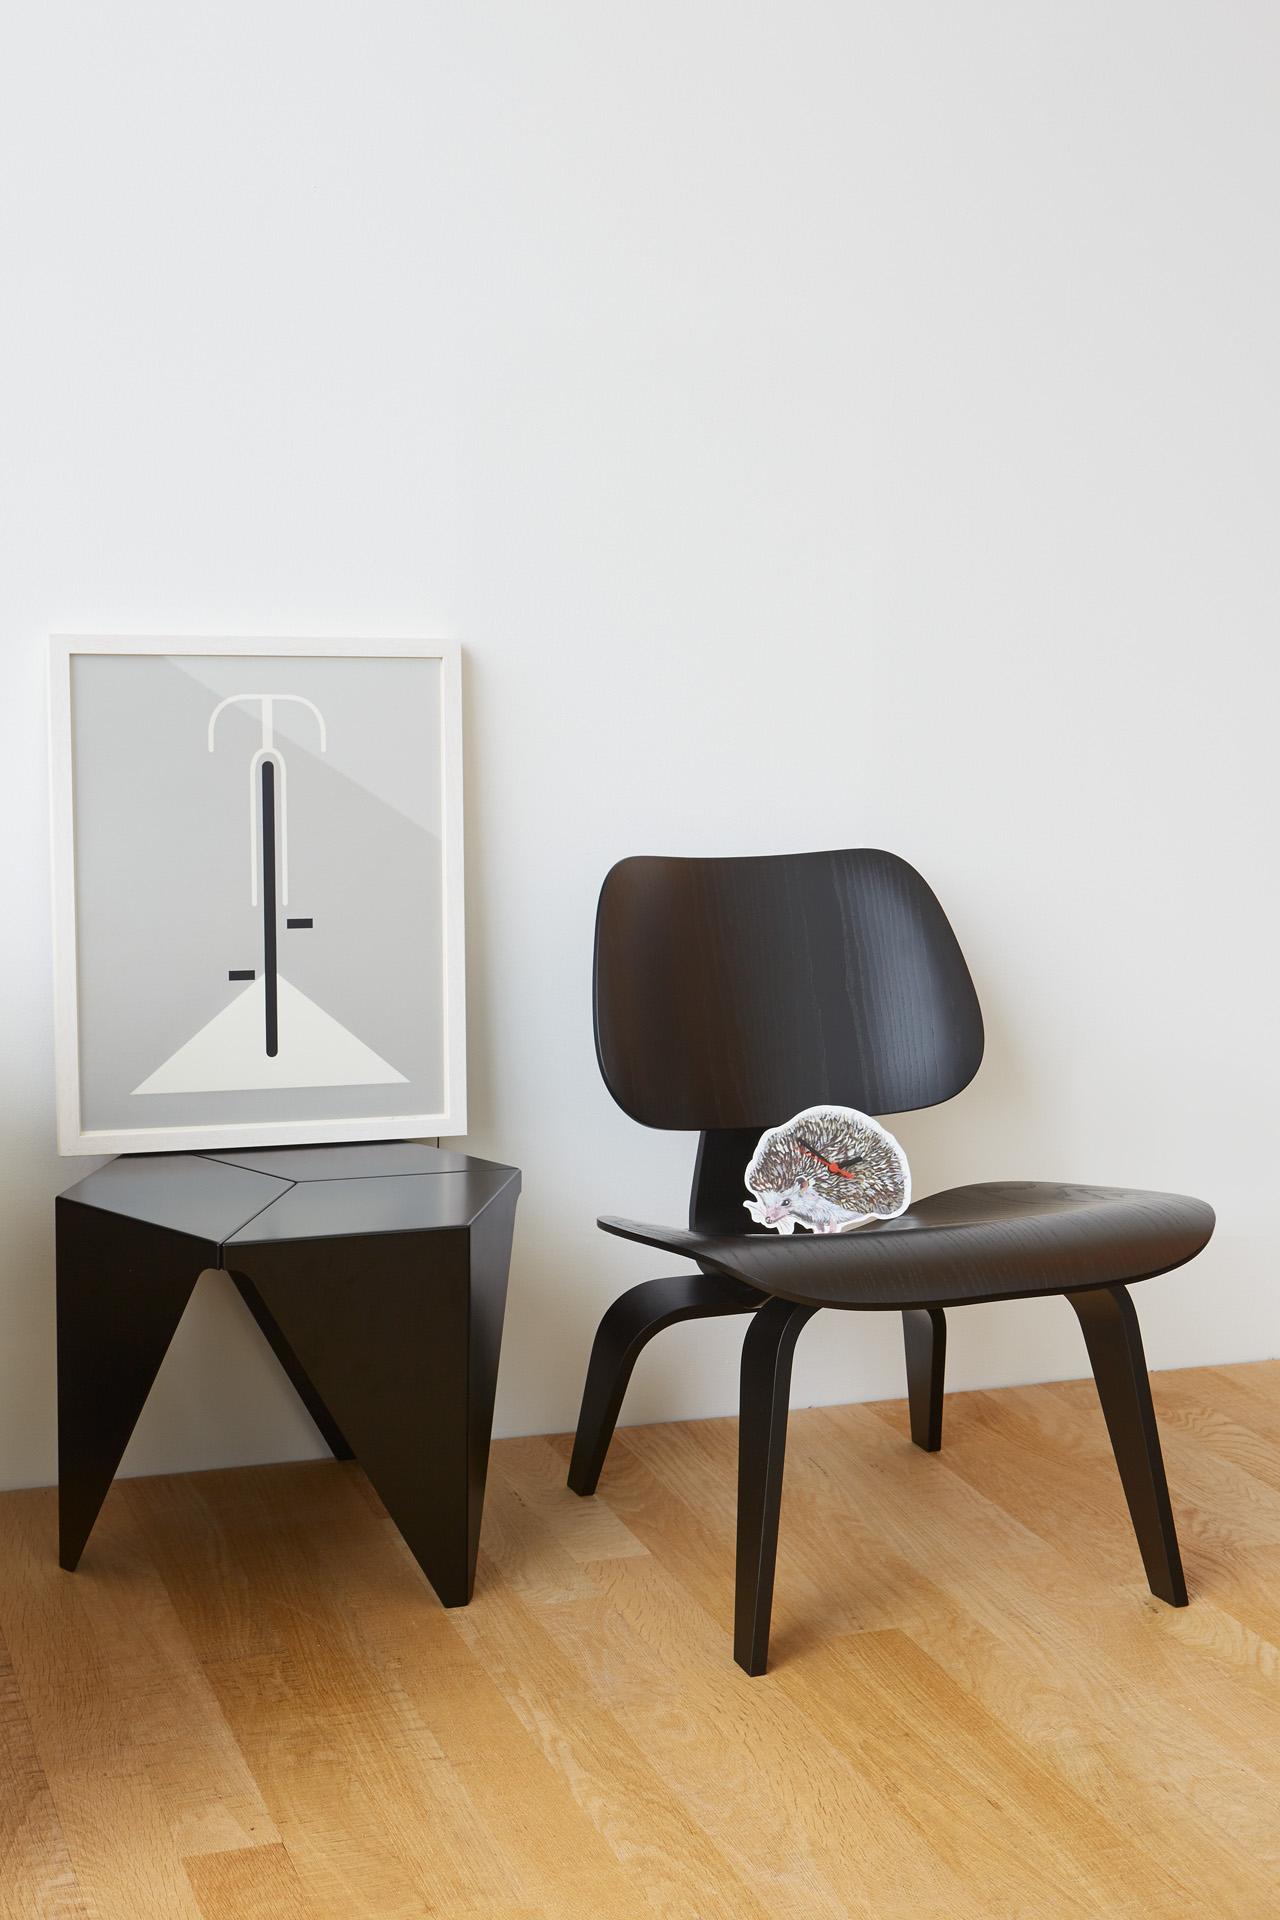 LCW Plywood chair by Eames & Prismatic table by Isamu Noguchi